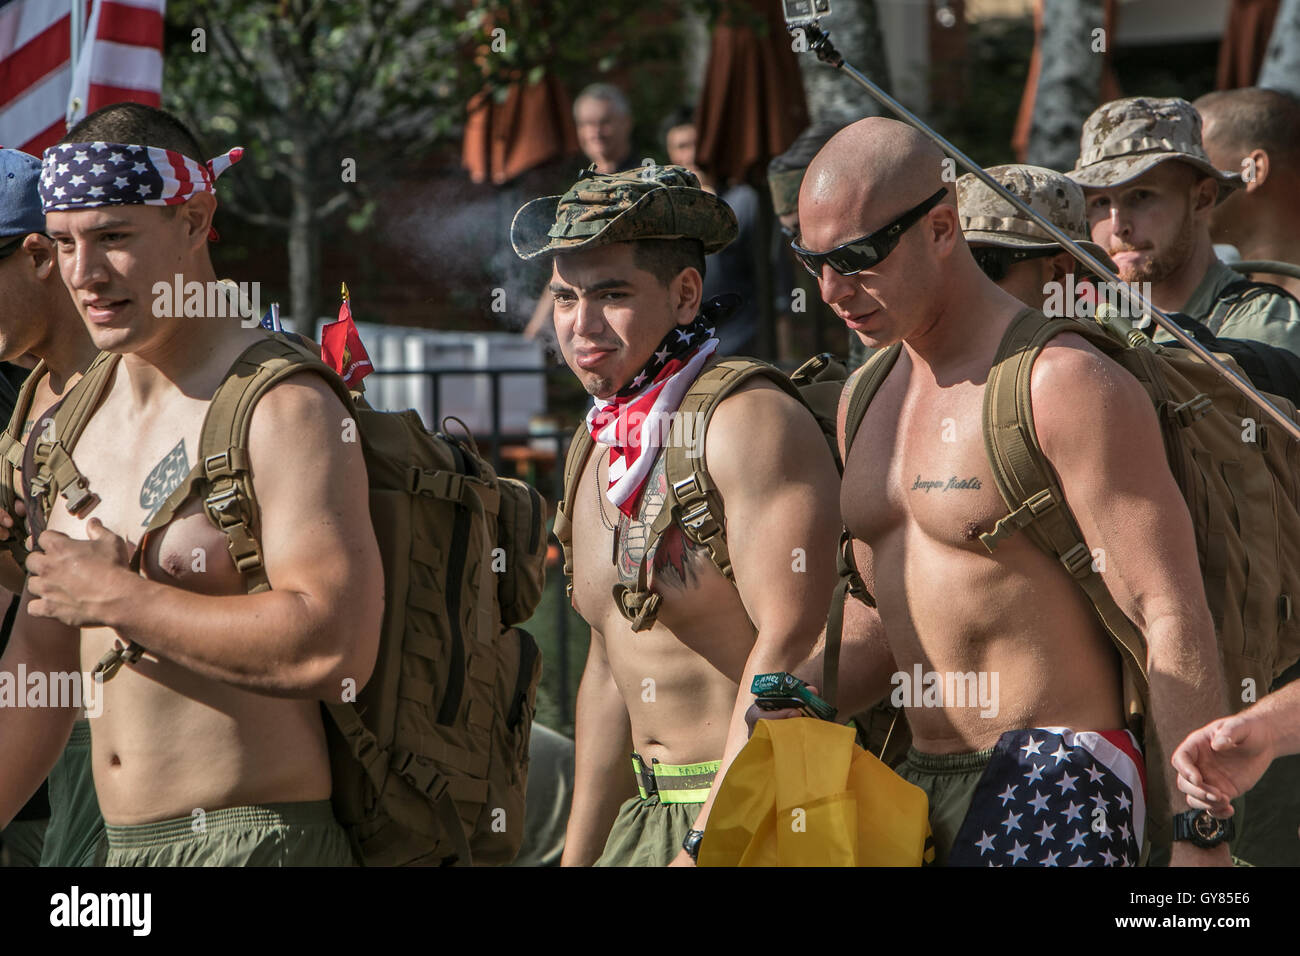 New York, 17th Sept, 2016. The start of the Silkies Hike. The event aims to raise awareness of the post traumatic - Stock Image